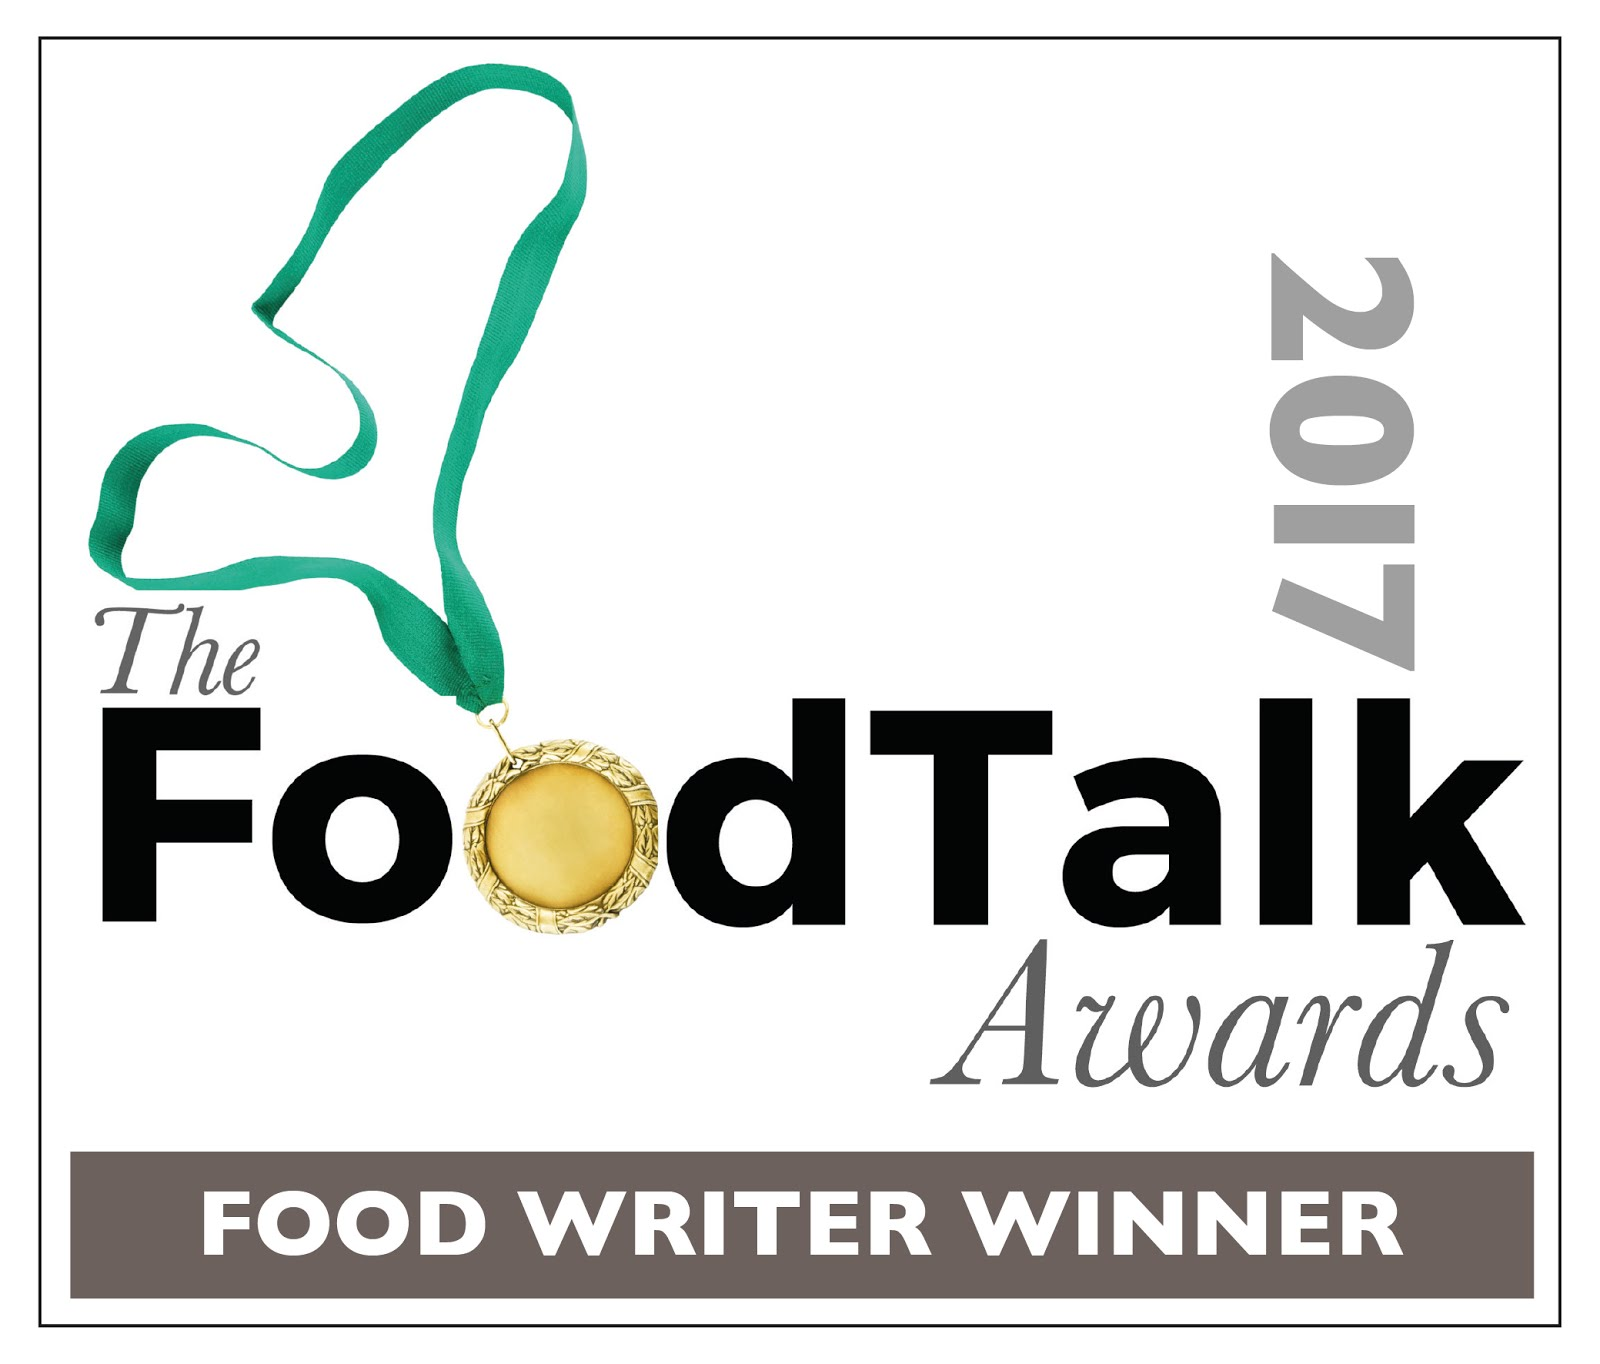 Food Writing Awards